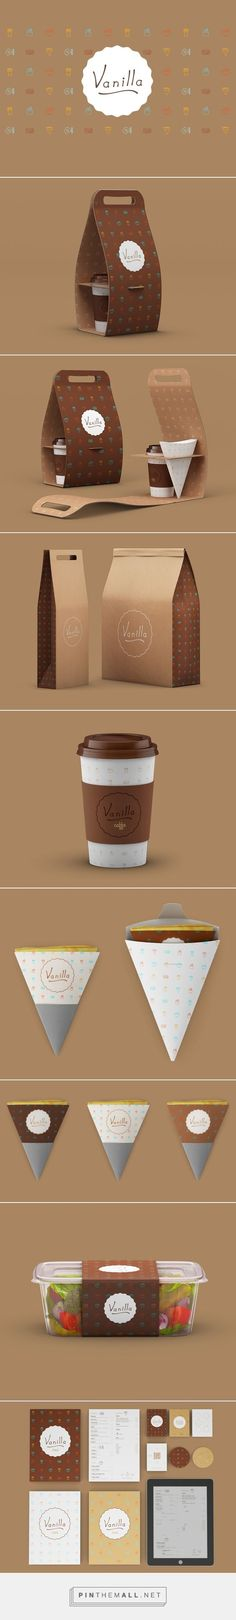 Vanilla identity packaging branding on Behance by Mario Dragic curated by Packaging Diva PD. A small food takeaway cafe where you can get great pancakes, sandwiches and salads.: